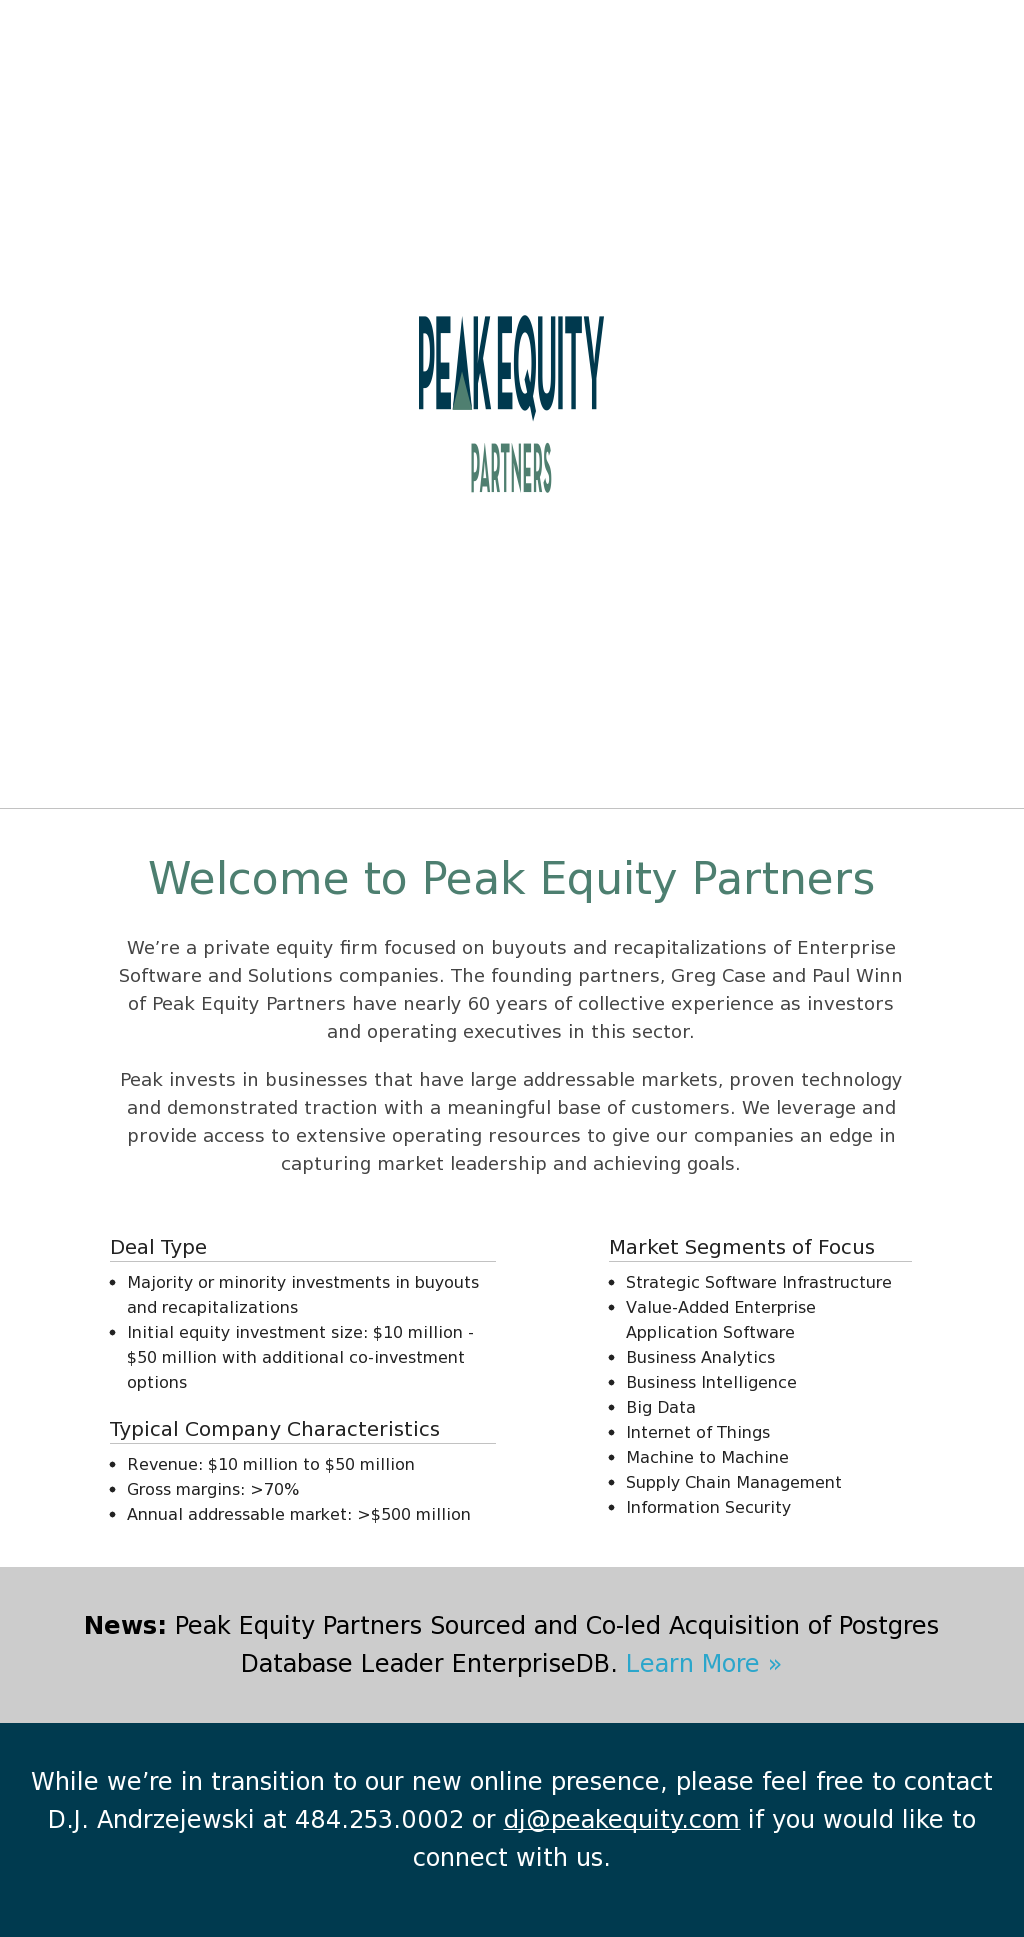 Peak Equity Partners Competitors, Revenue and Employees - Owler